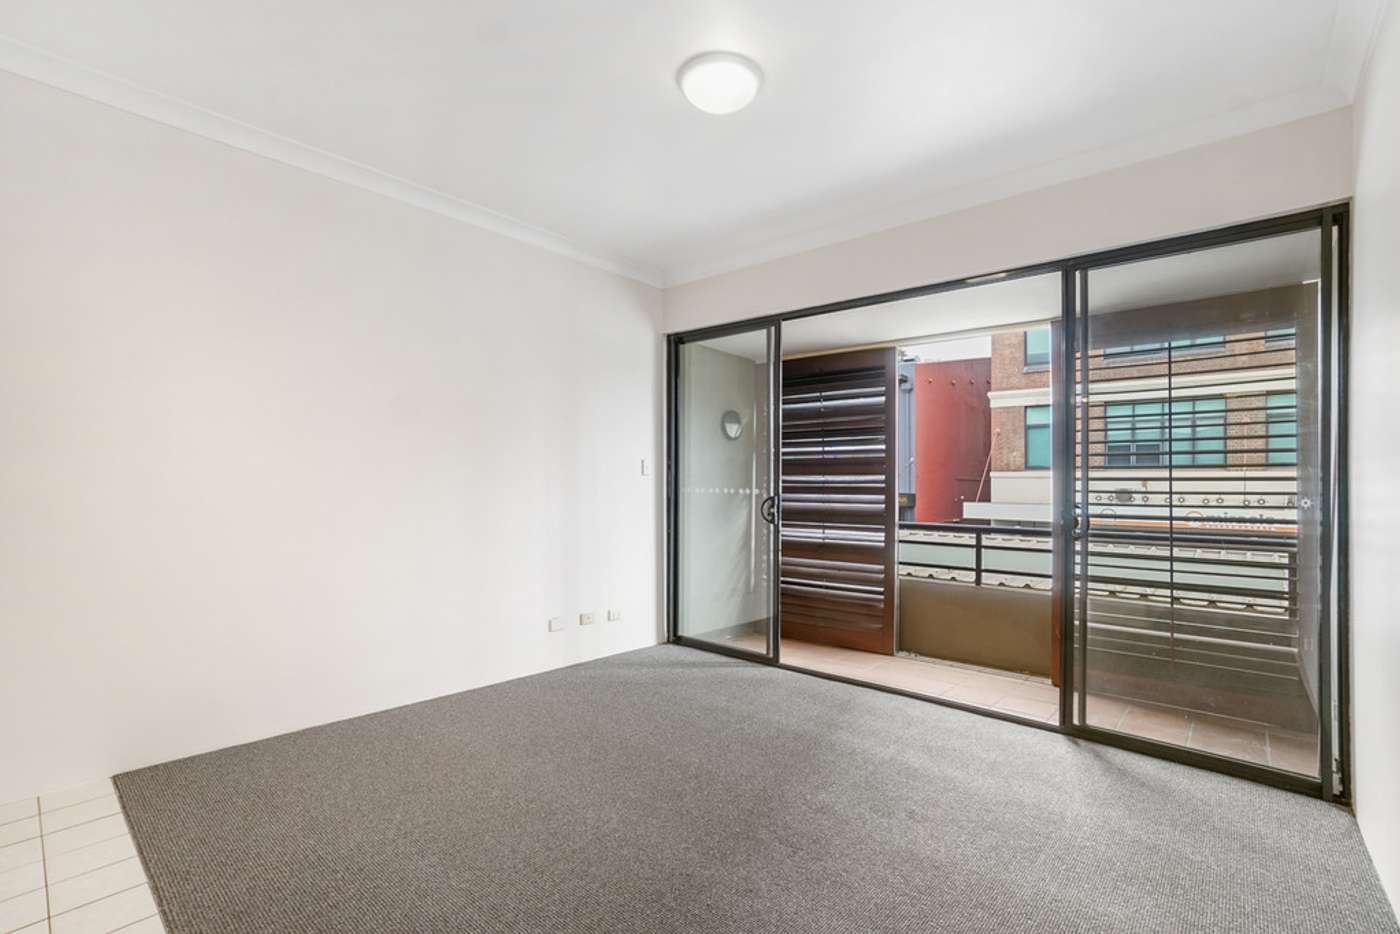 Main view of Homely unit listing, 13/55 King Street, Newtown NSW 2042